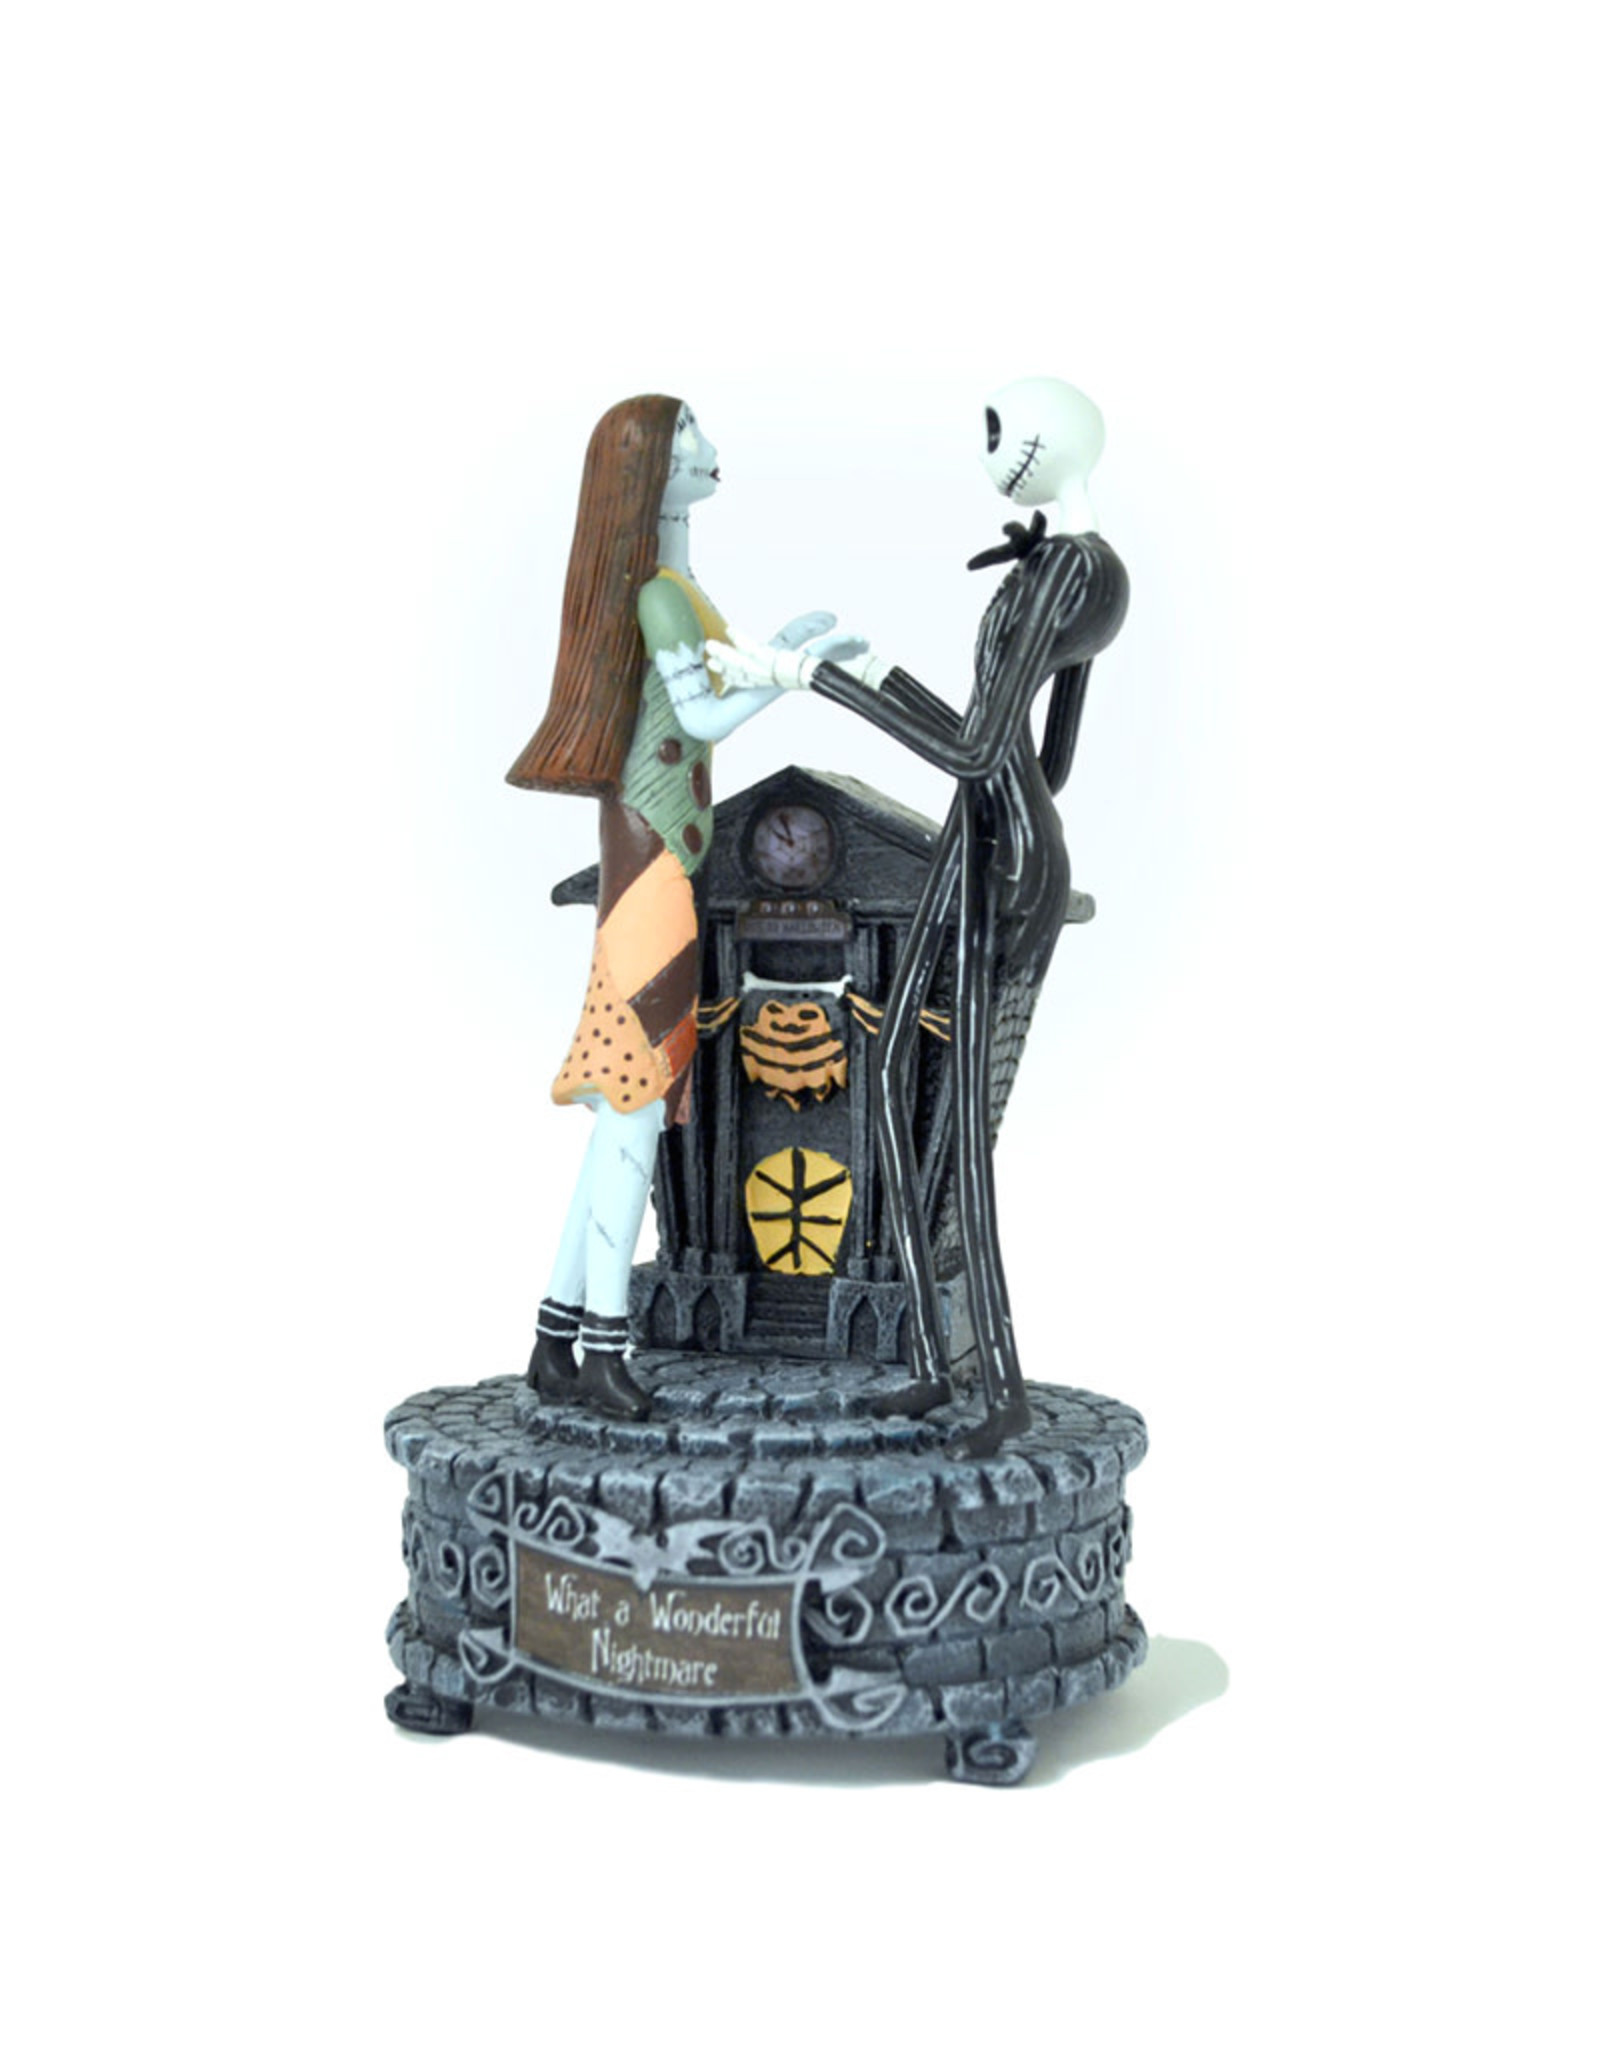 The Nightmare Before Christmas The Nightmare Before Christmas ( Musical Figurine )  What a wonderful nightmare